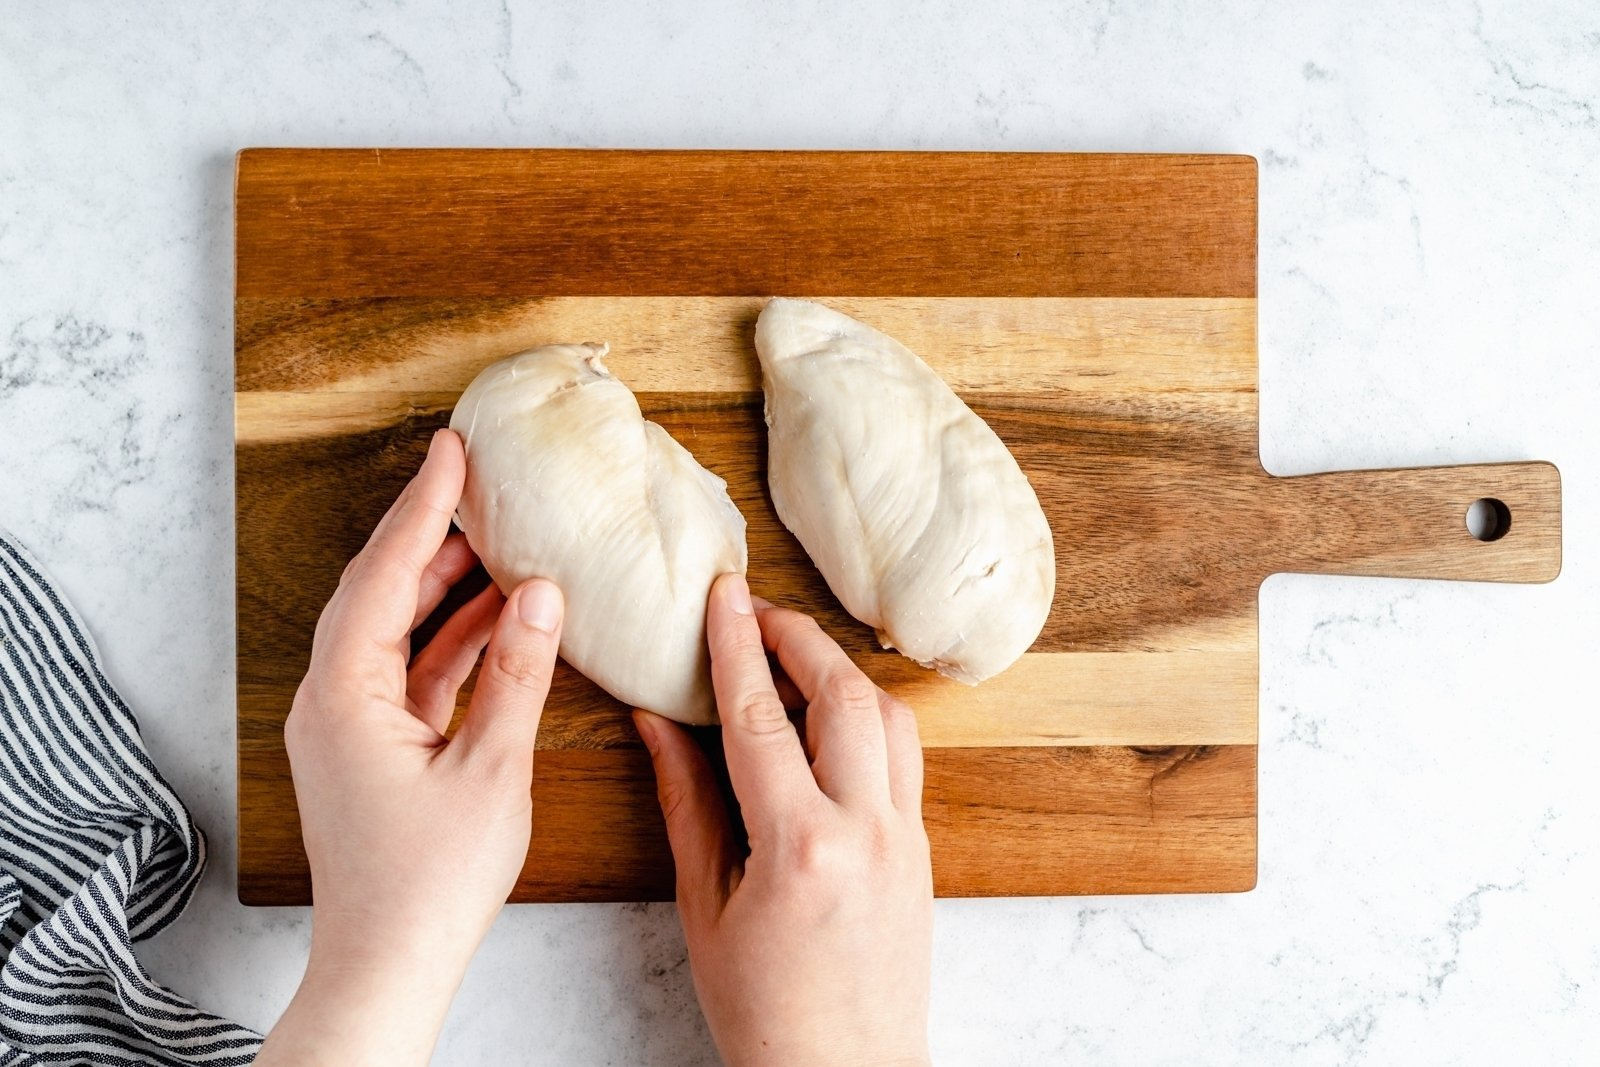 hands holding cooked chicken breast on a cutting board